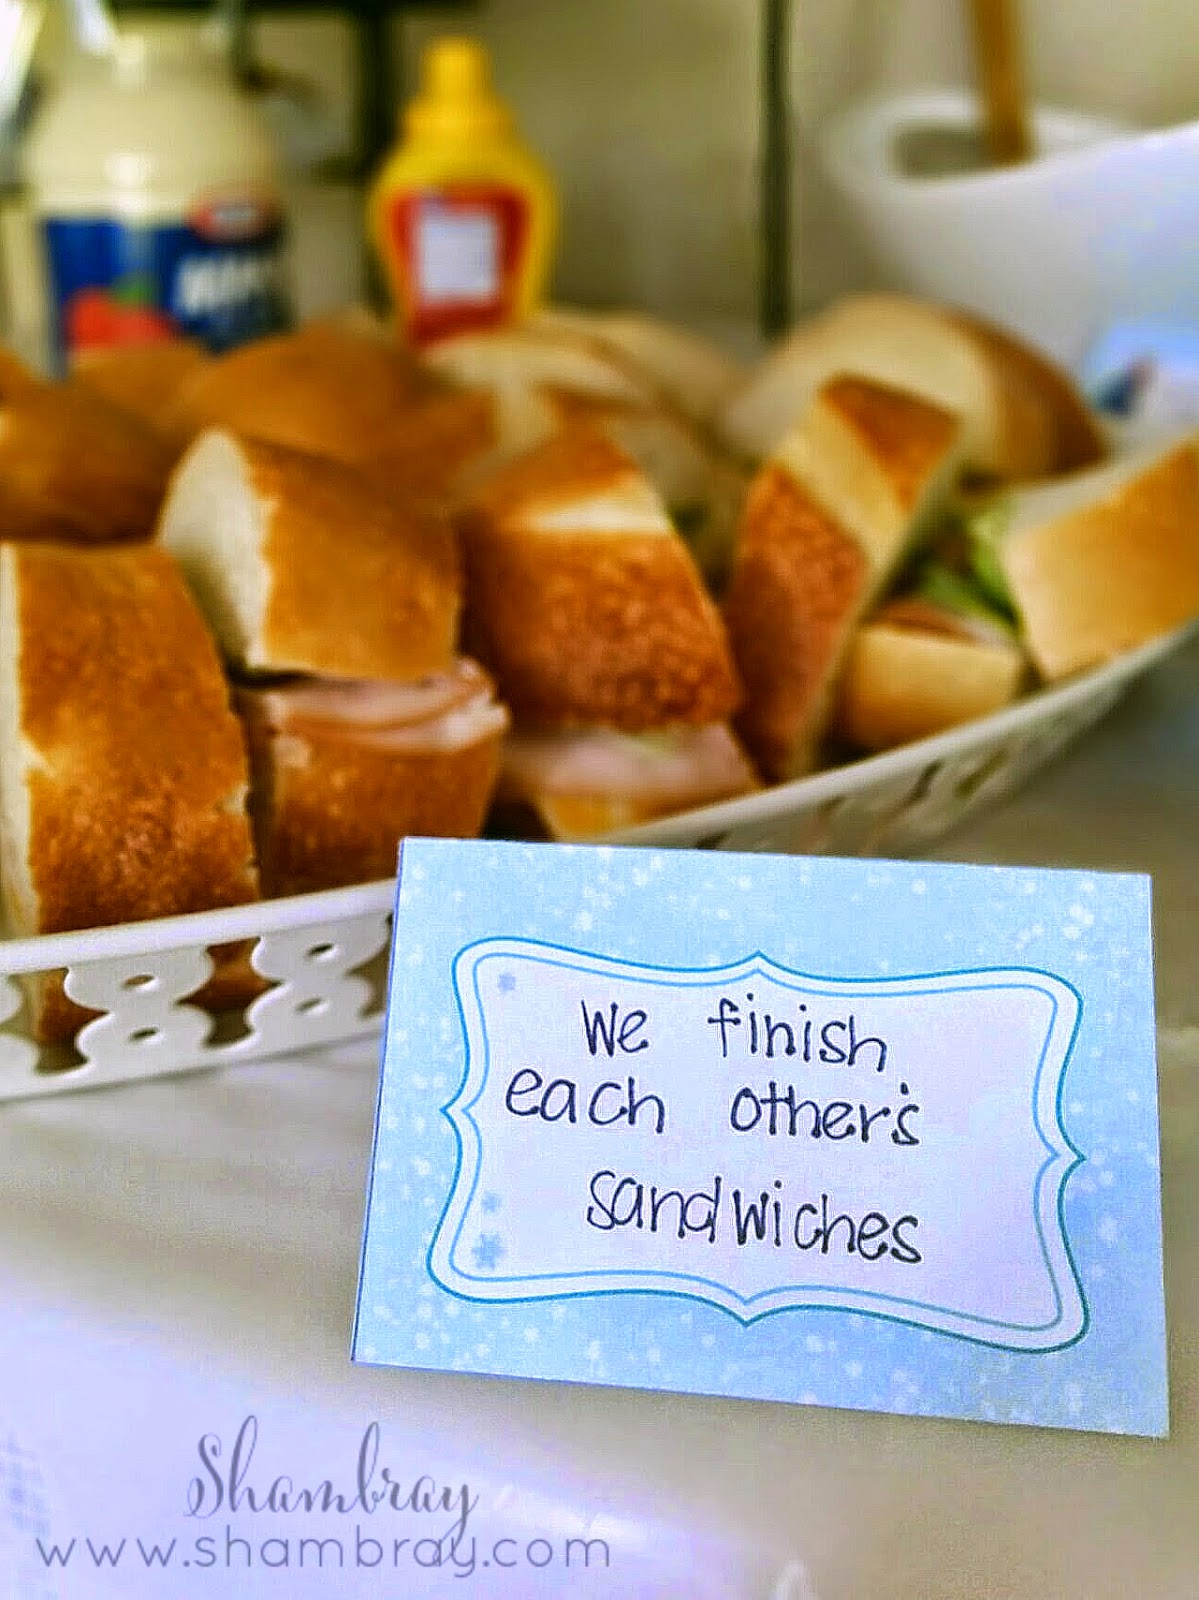 Sandwiches We Finish Each Others